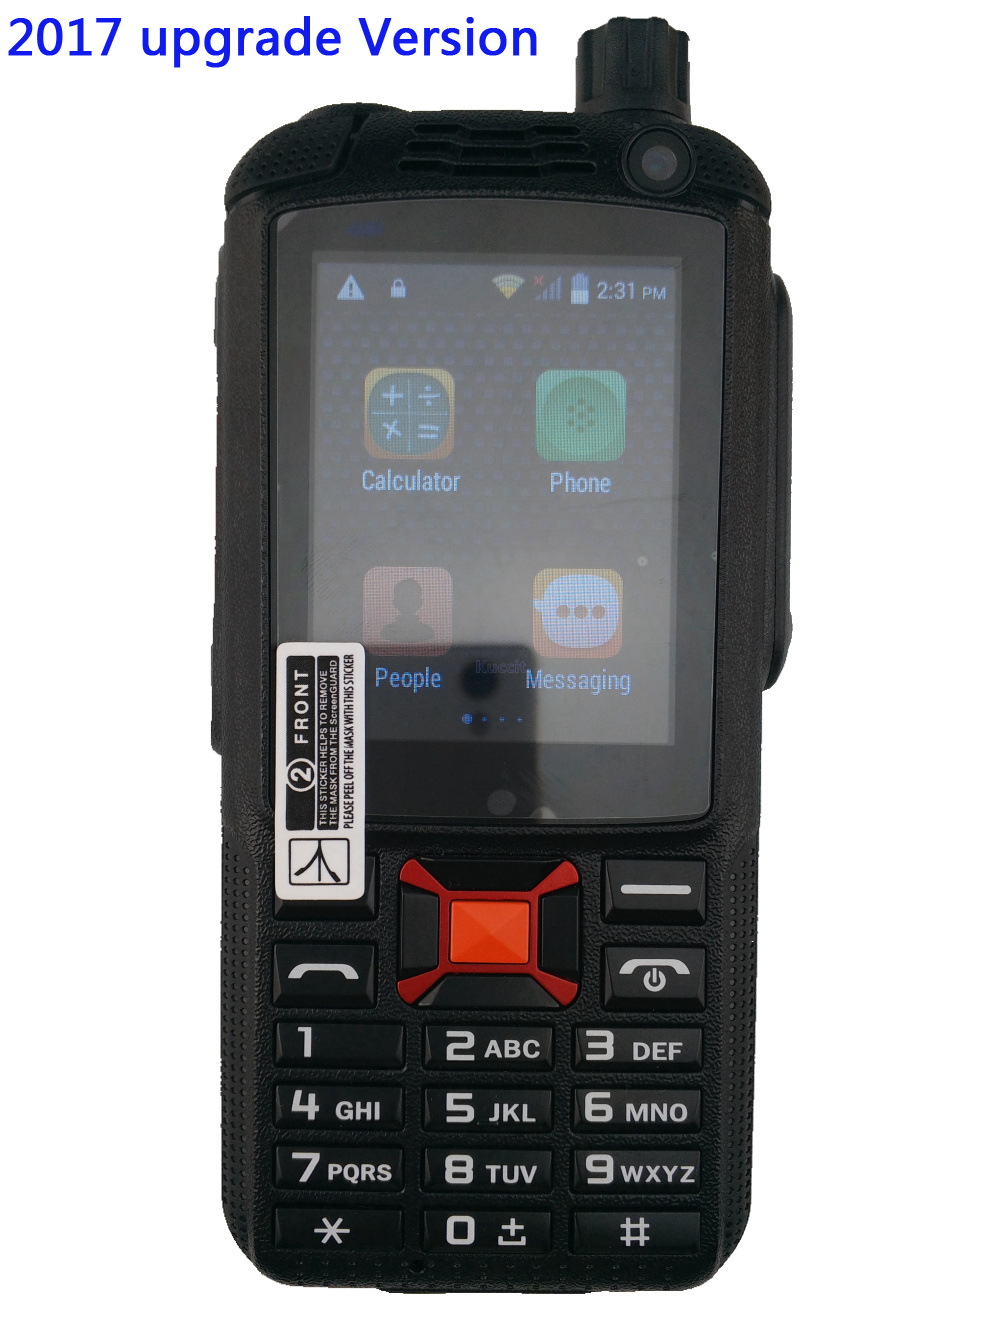 2017 Upgrade F22 Plus 3G Android Walkie Talkie Network intercom Rugged Phone Zello PTT Two Way